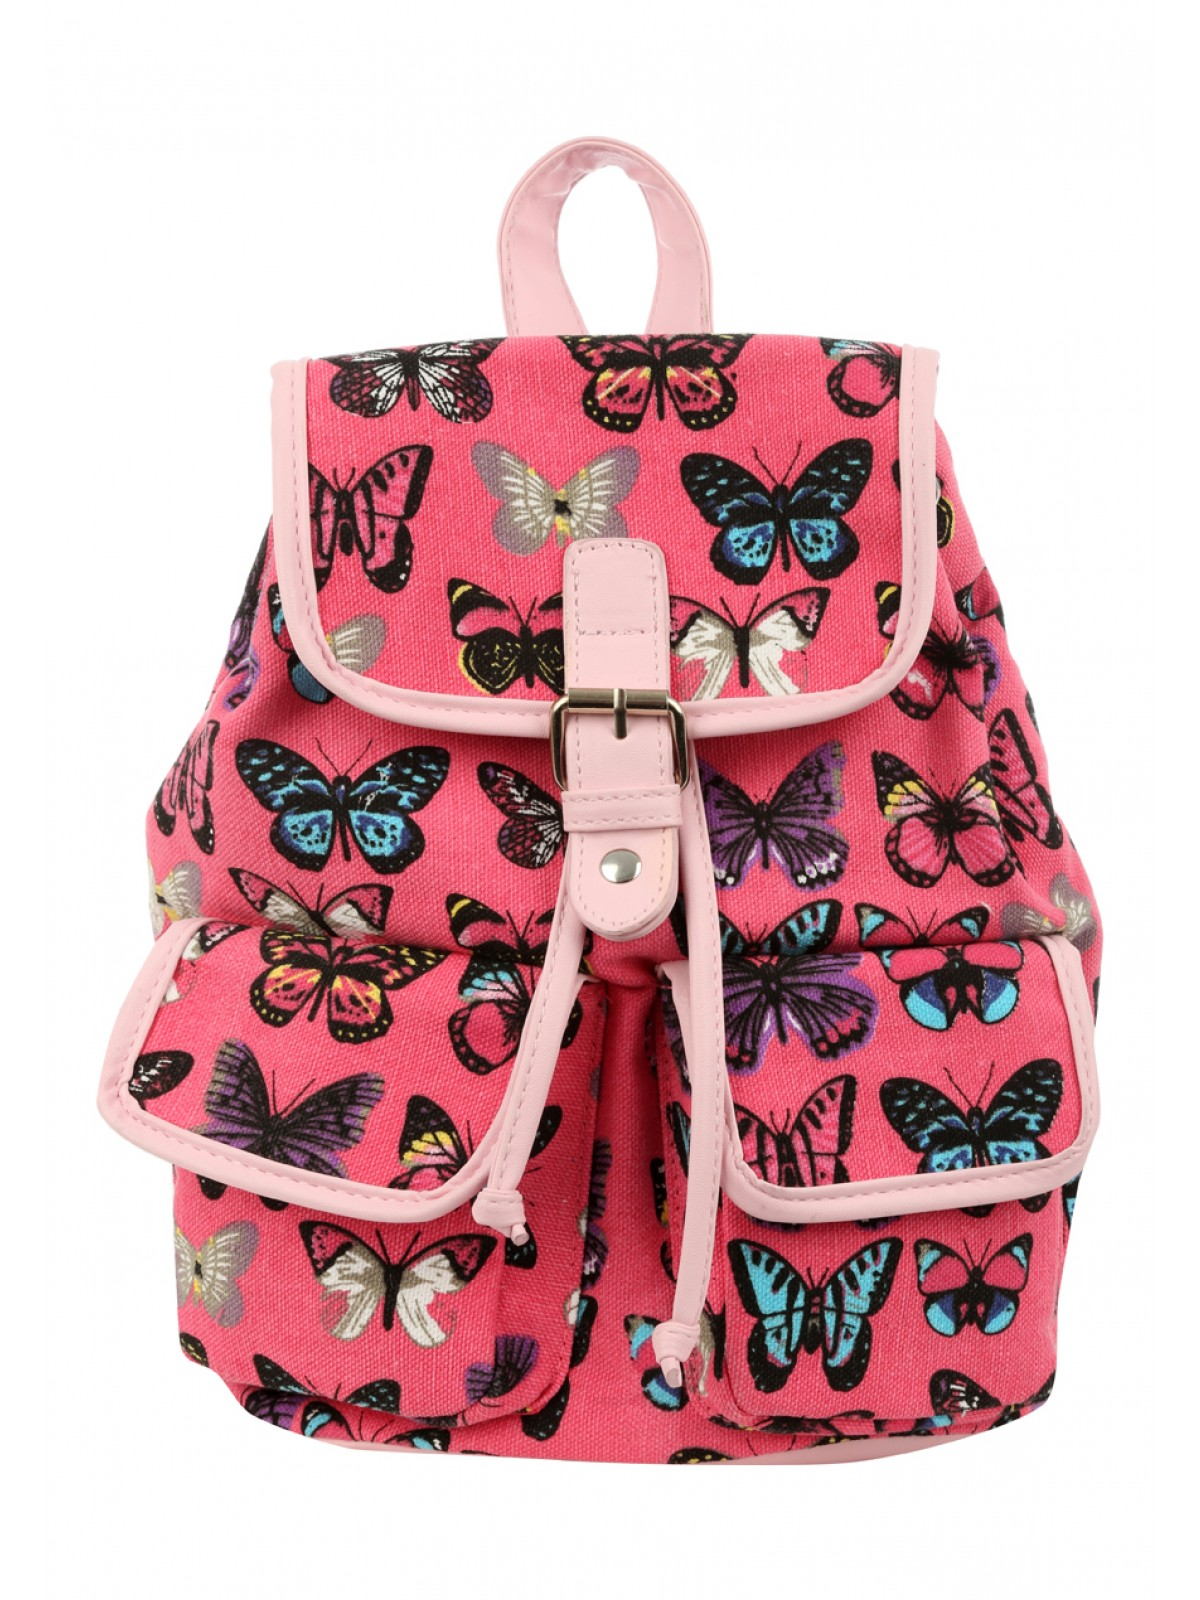 ROXY has the best backpacks, purses and handbags for girls and women. Get the perfect accessory for your outfit. Everyday Free Shipping.